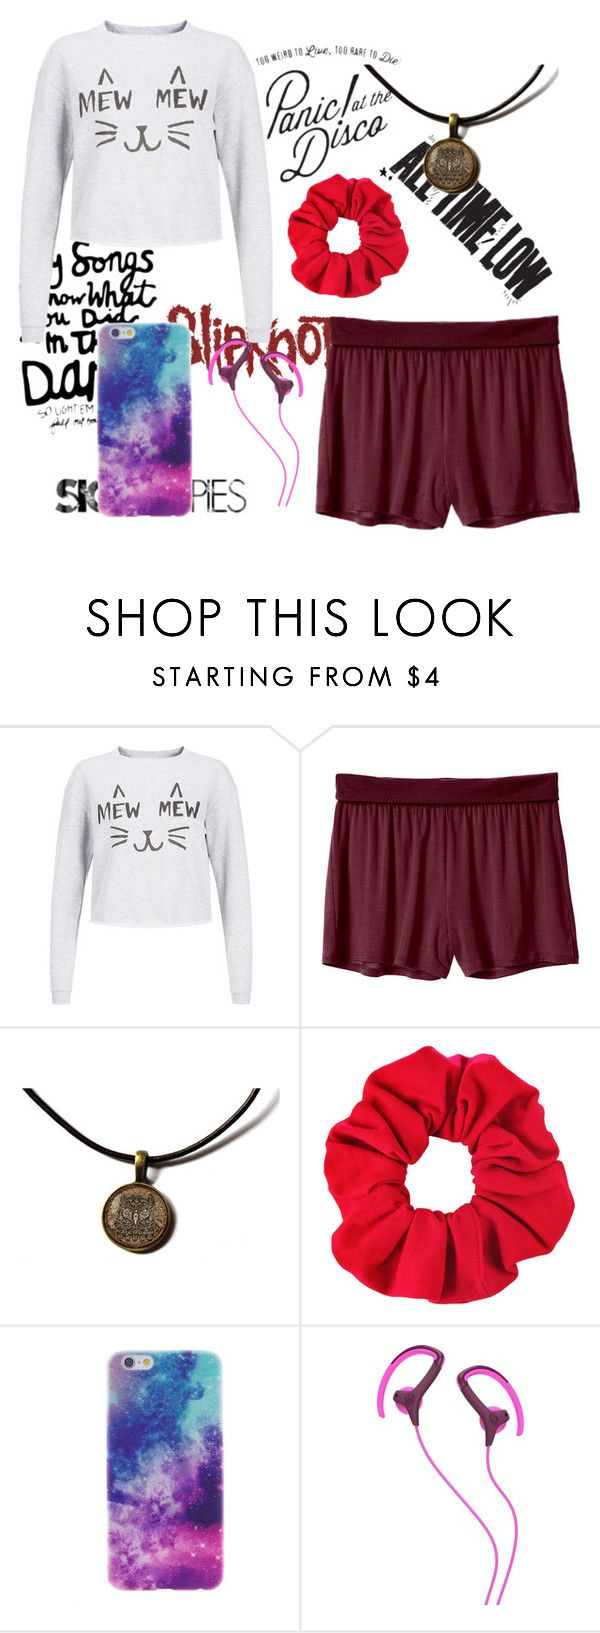 """I'm just gonna stay in bed all day"" by scullbelle ❤ liked on Polyvore featuring мода, Mew., Body by Victoria и Skullcandy"